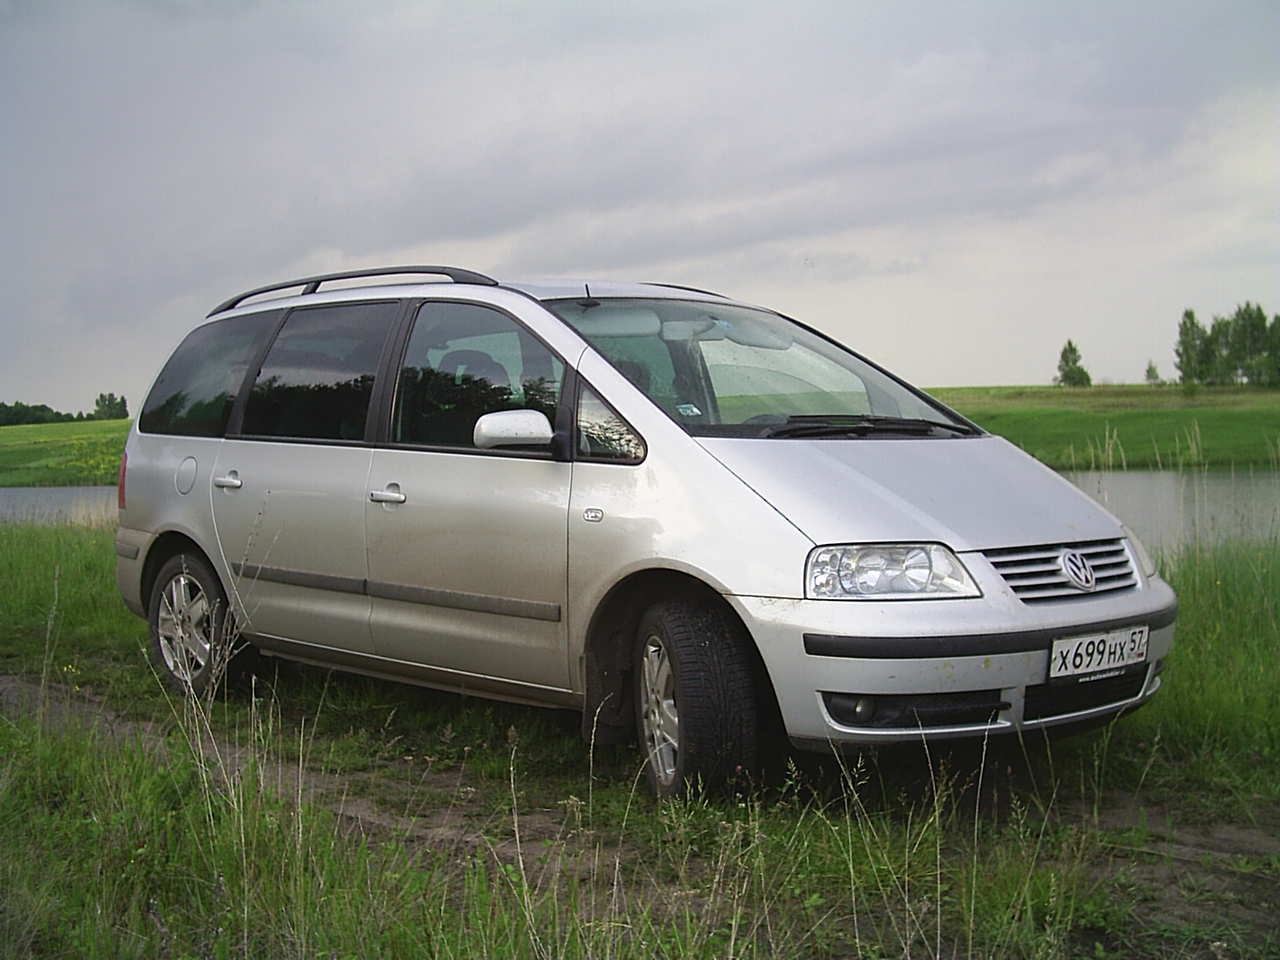 Vw For Sale >> 2002 Volkswagen Sharan Photos, 1.9, Diesel, FF, Manual For ...